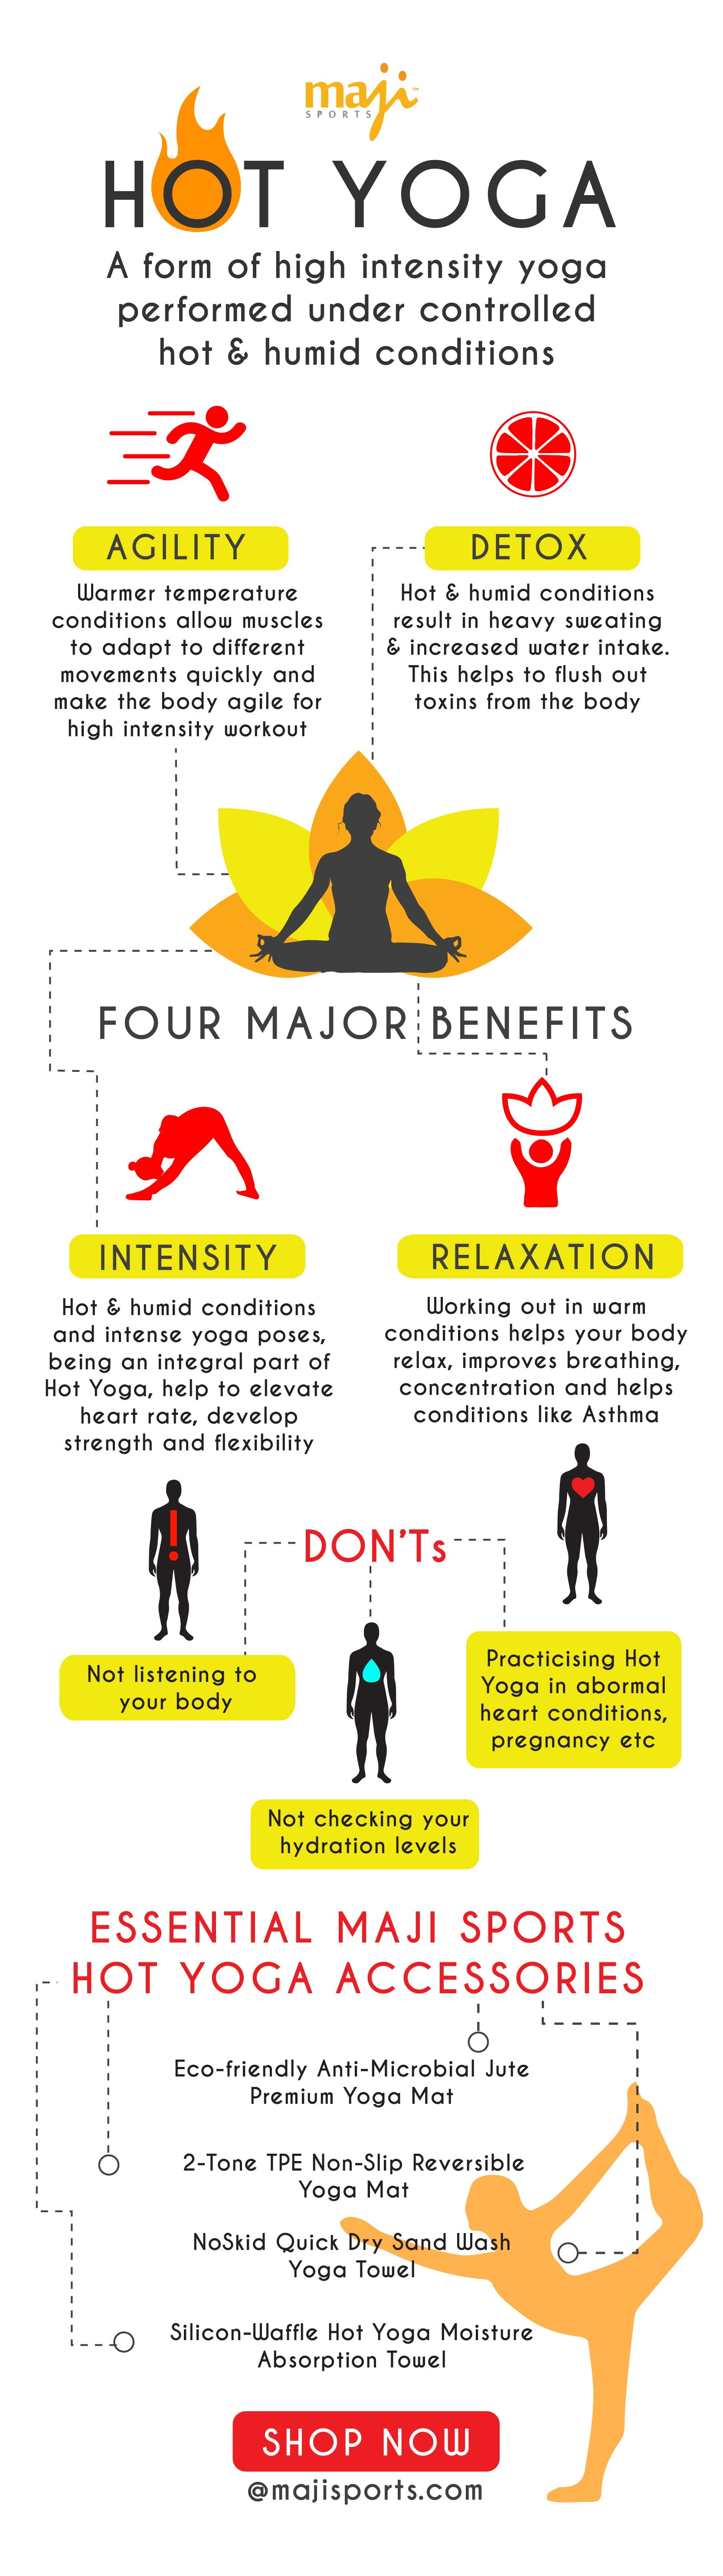 Hot Yoga - A Form of high intensity yoga perfomed under controlled hot & humid conditions